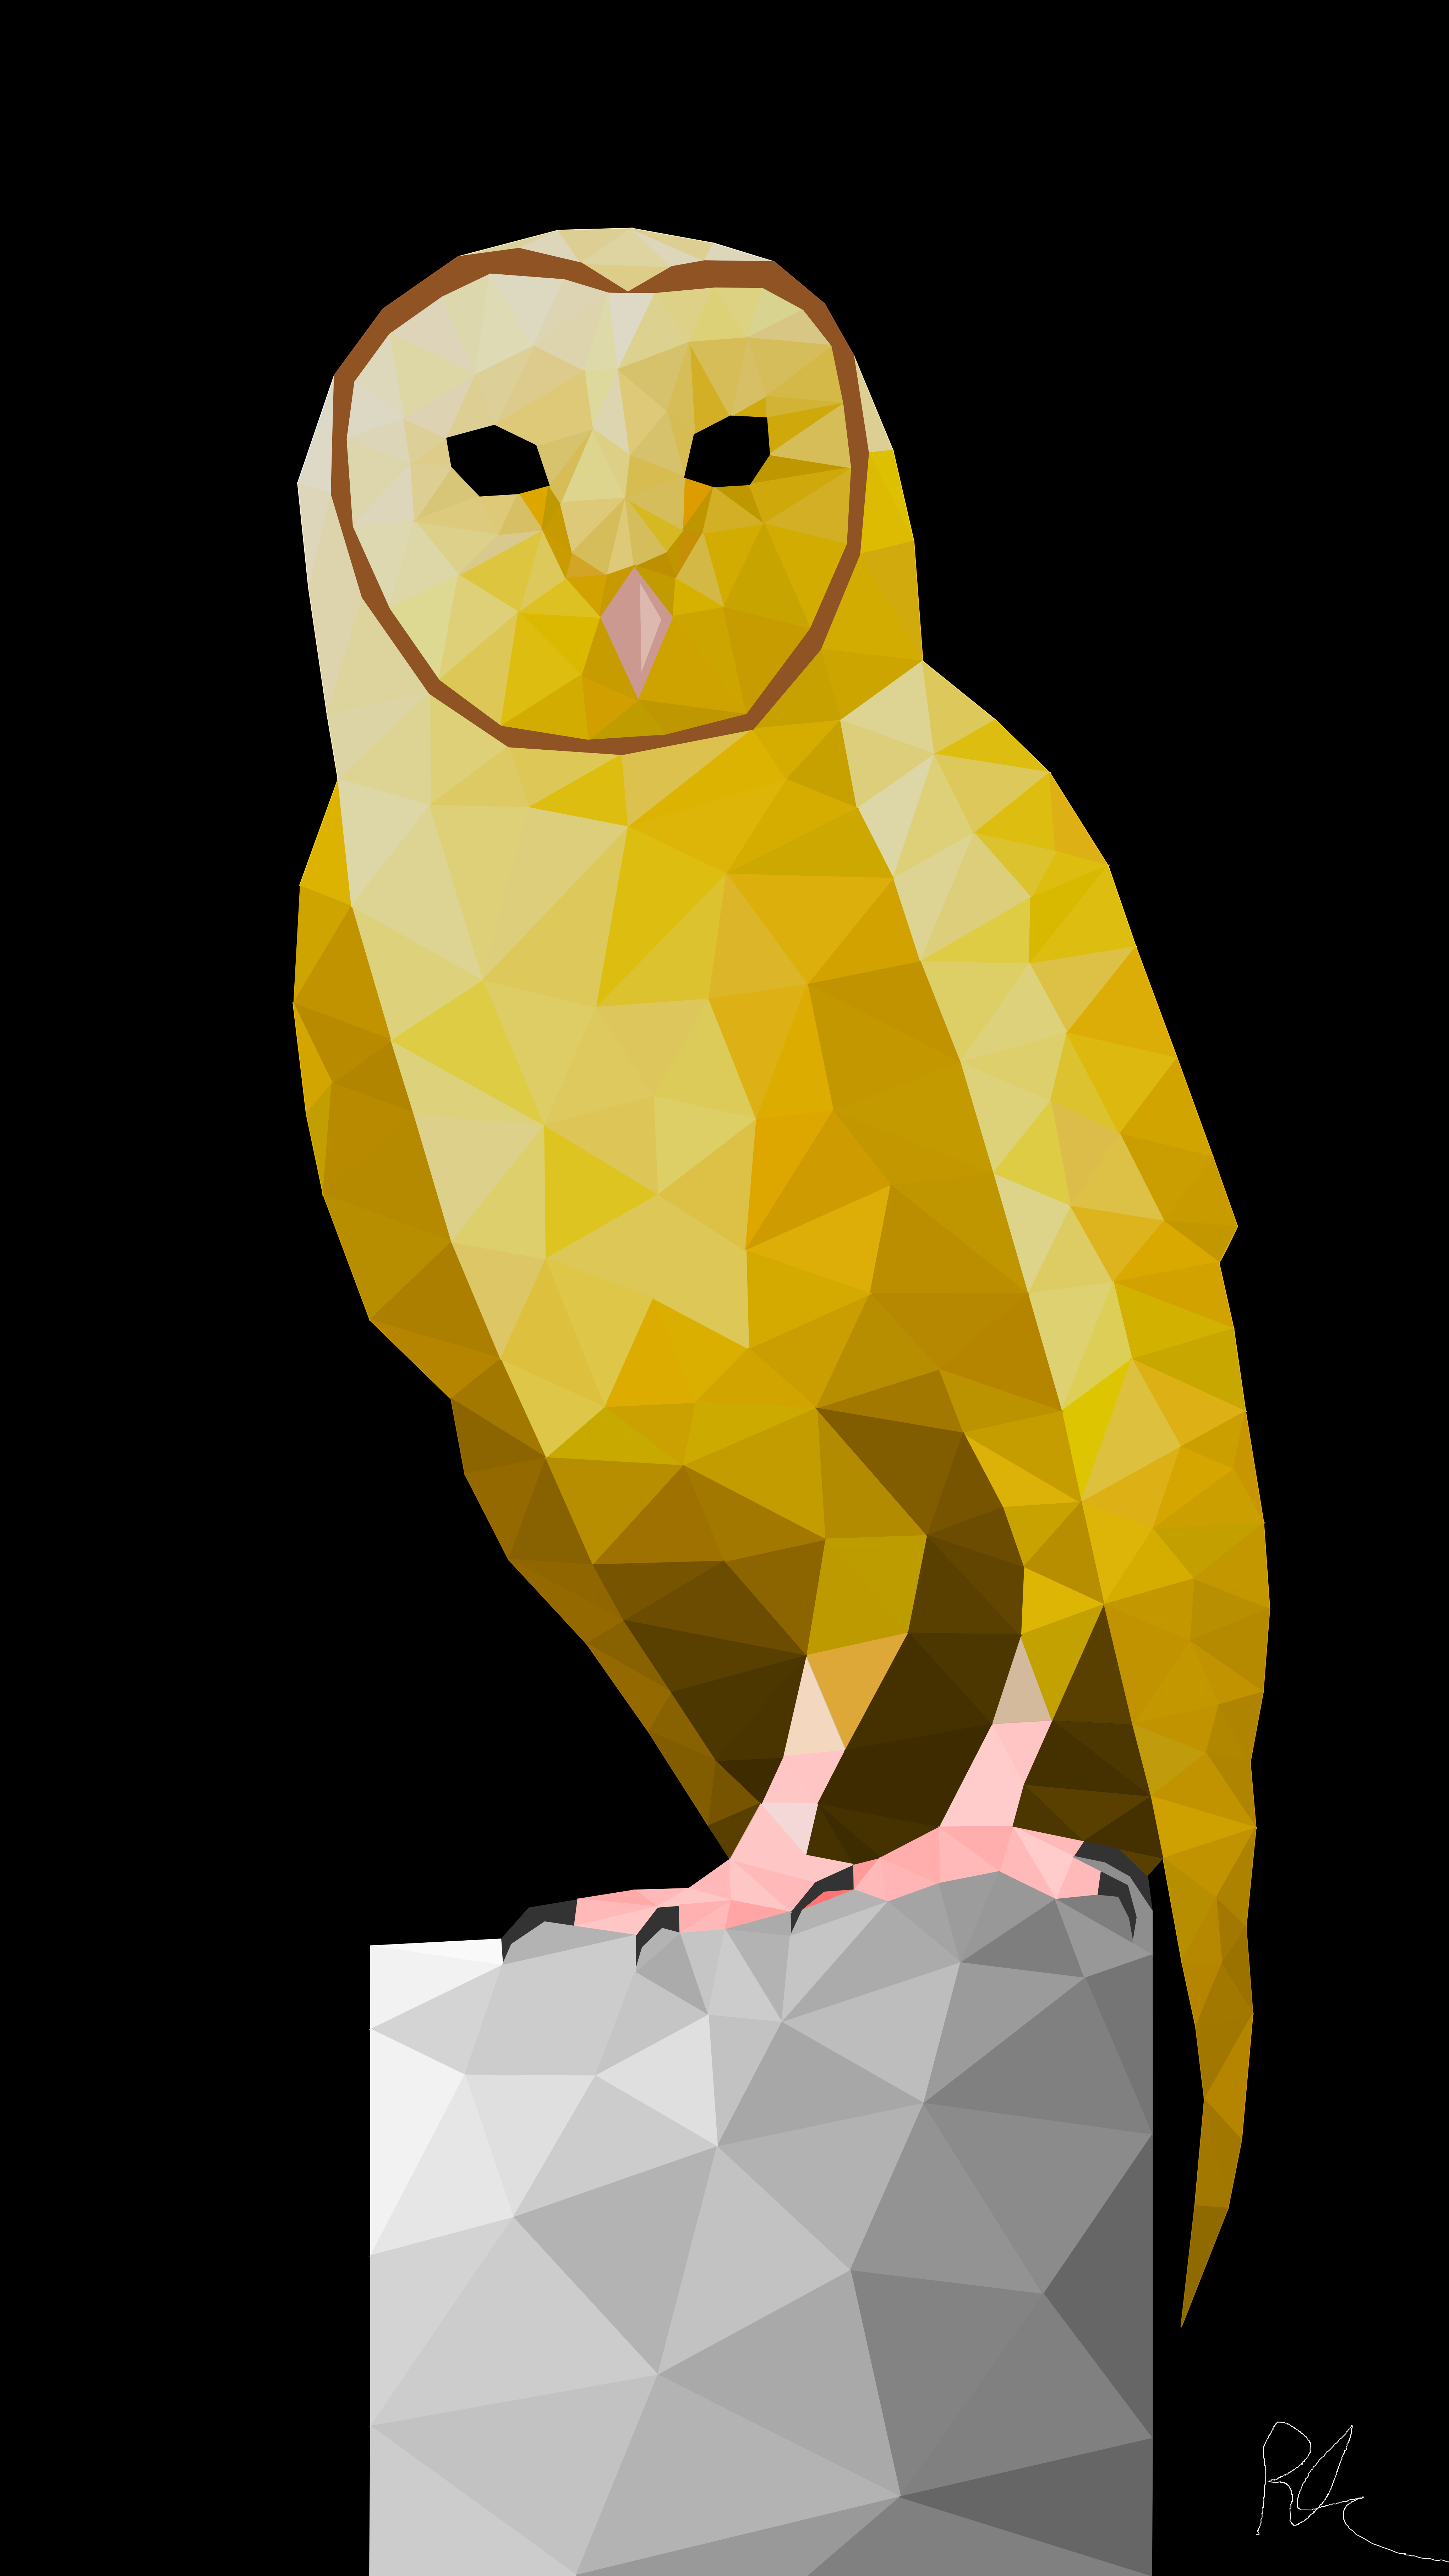 Owl 4k Wallpapers For Your Desktop Or Mobile Screen Free And Easy To Download